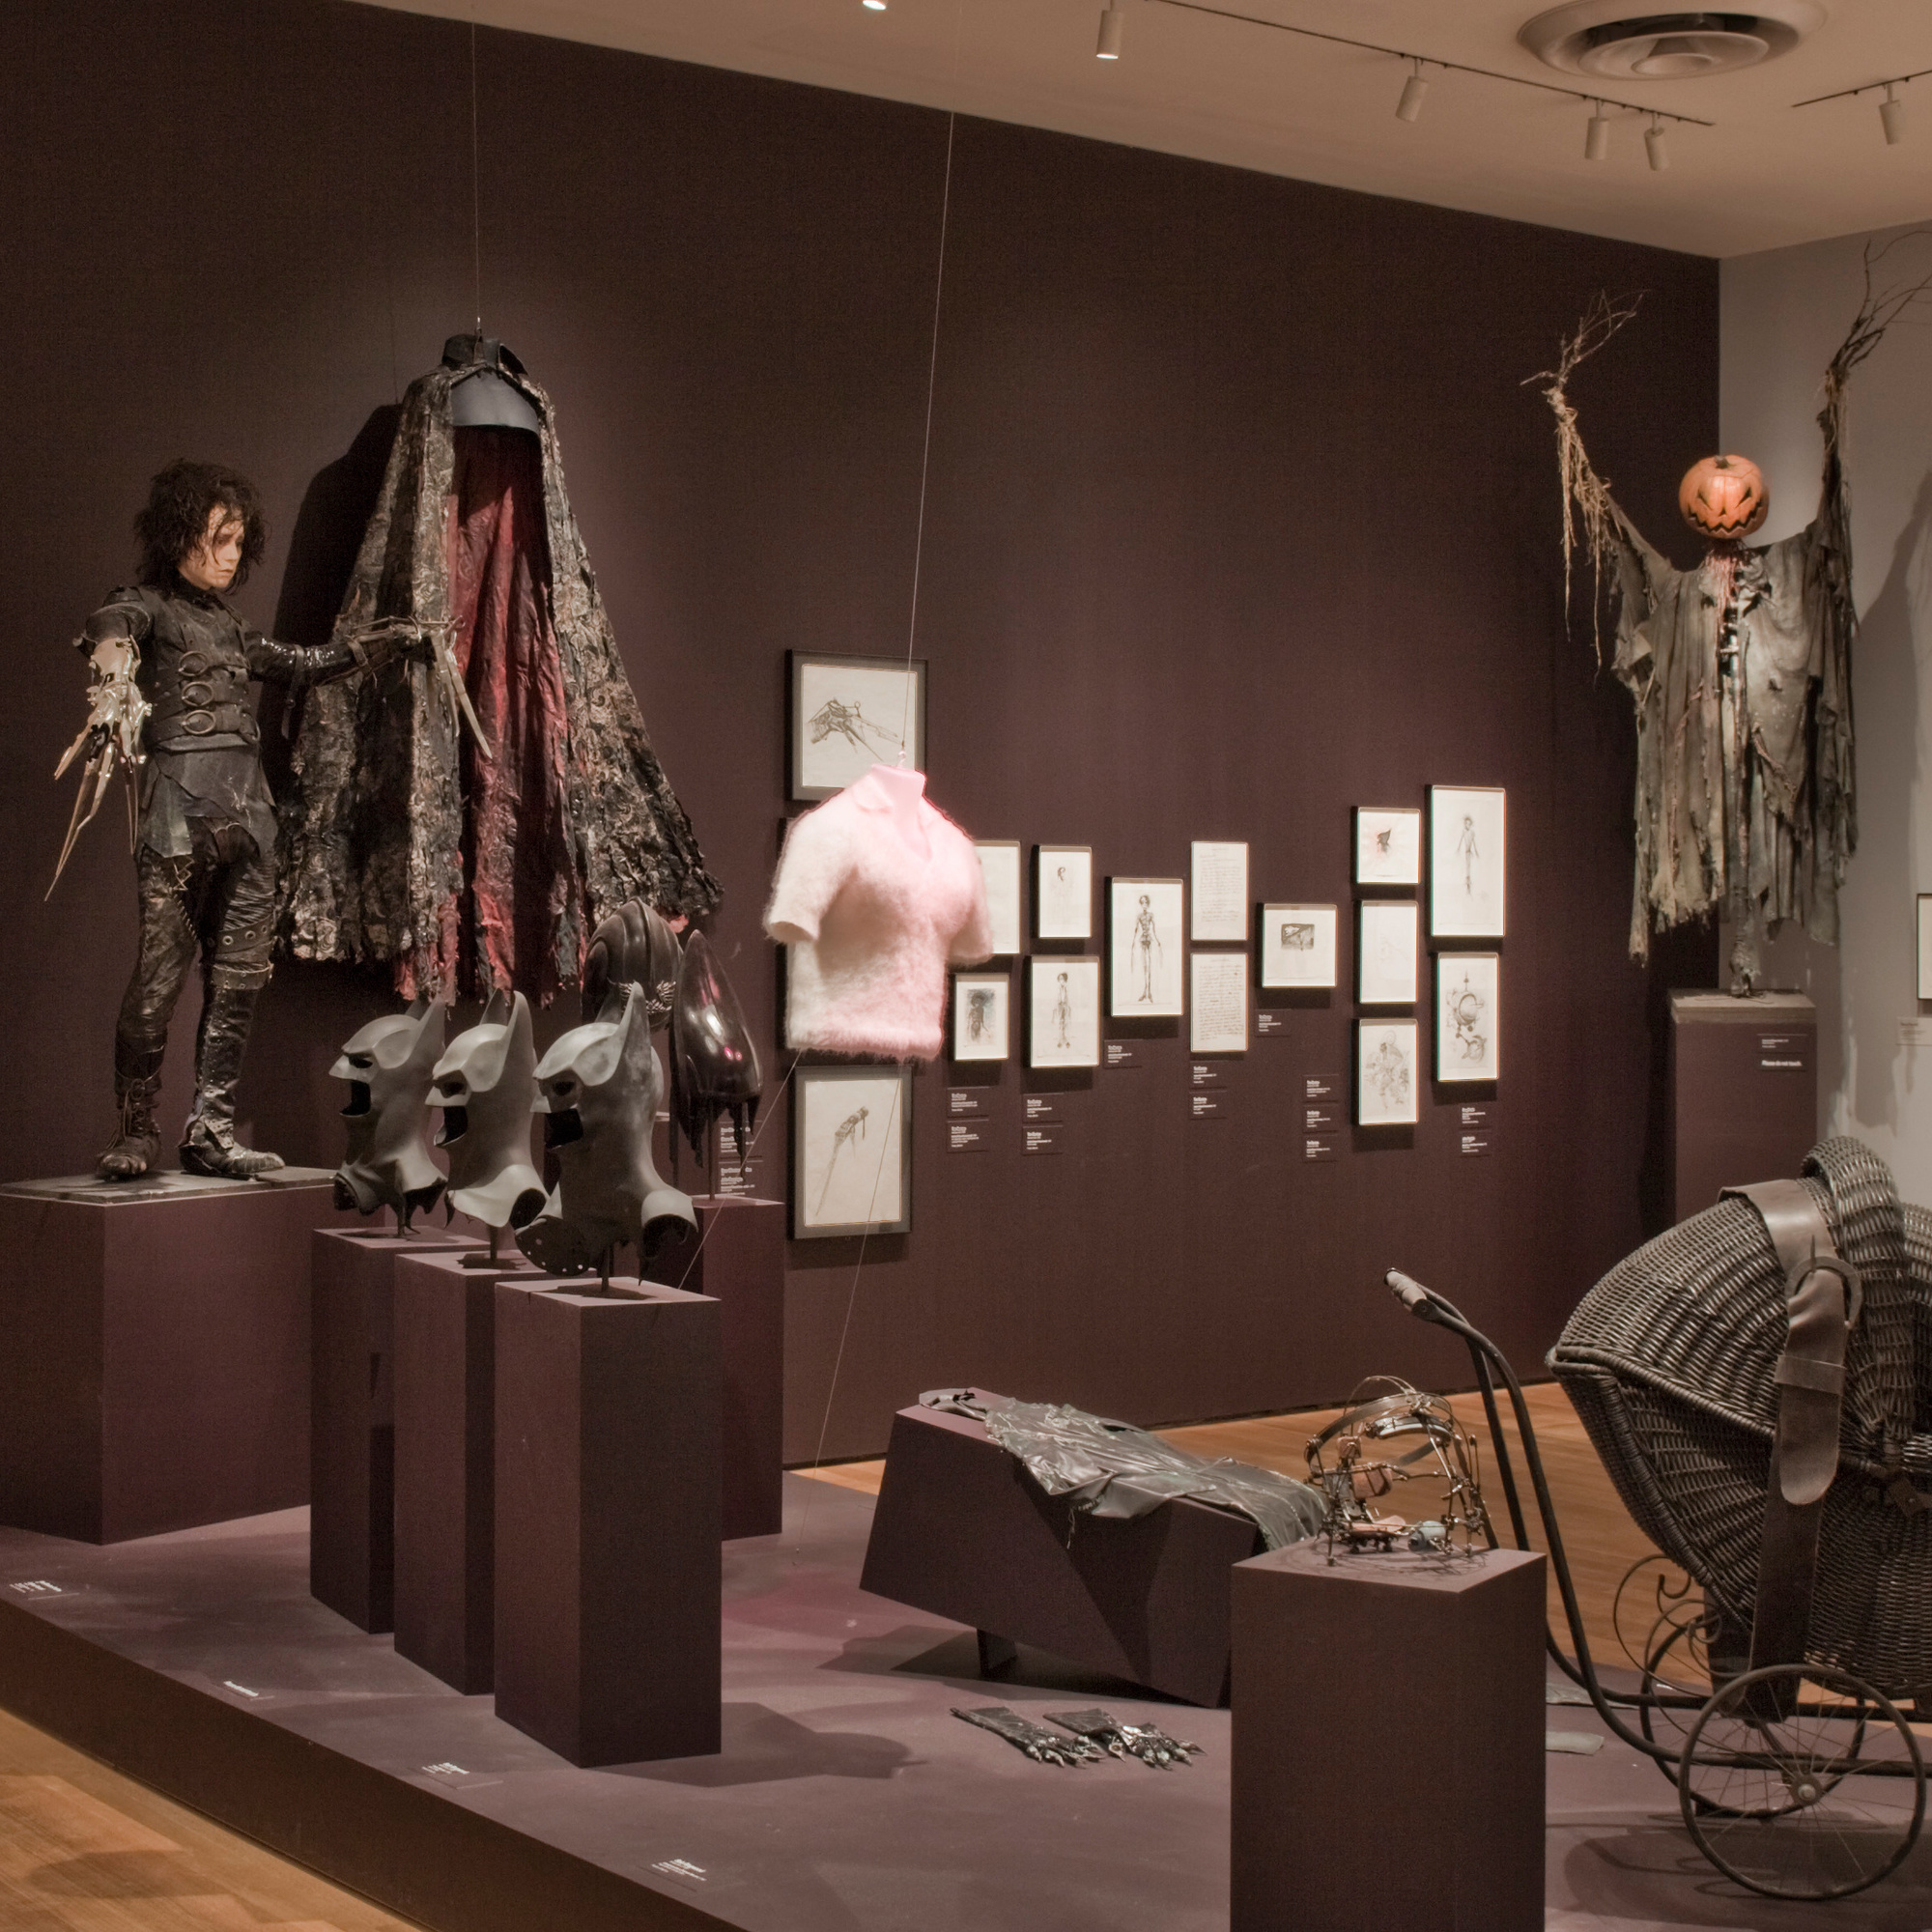 Installation view of Tim Burton at The Museum of Modern Art, New York. Photo: Thomas Griesel